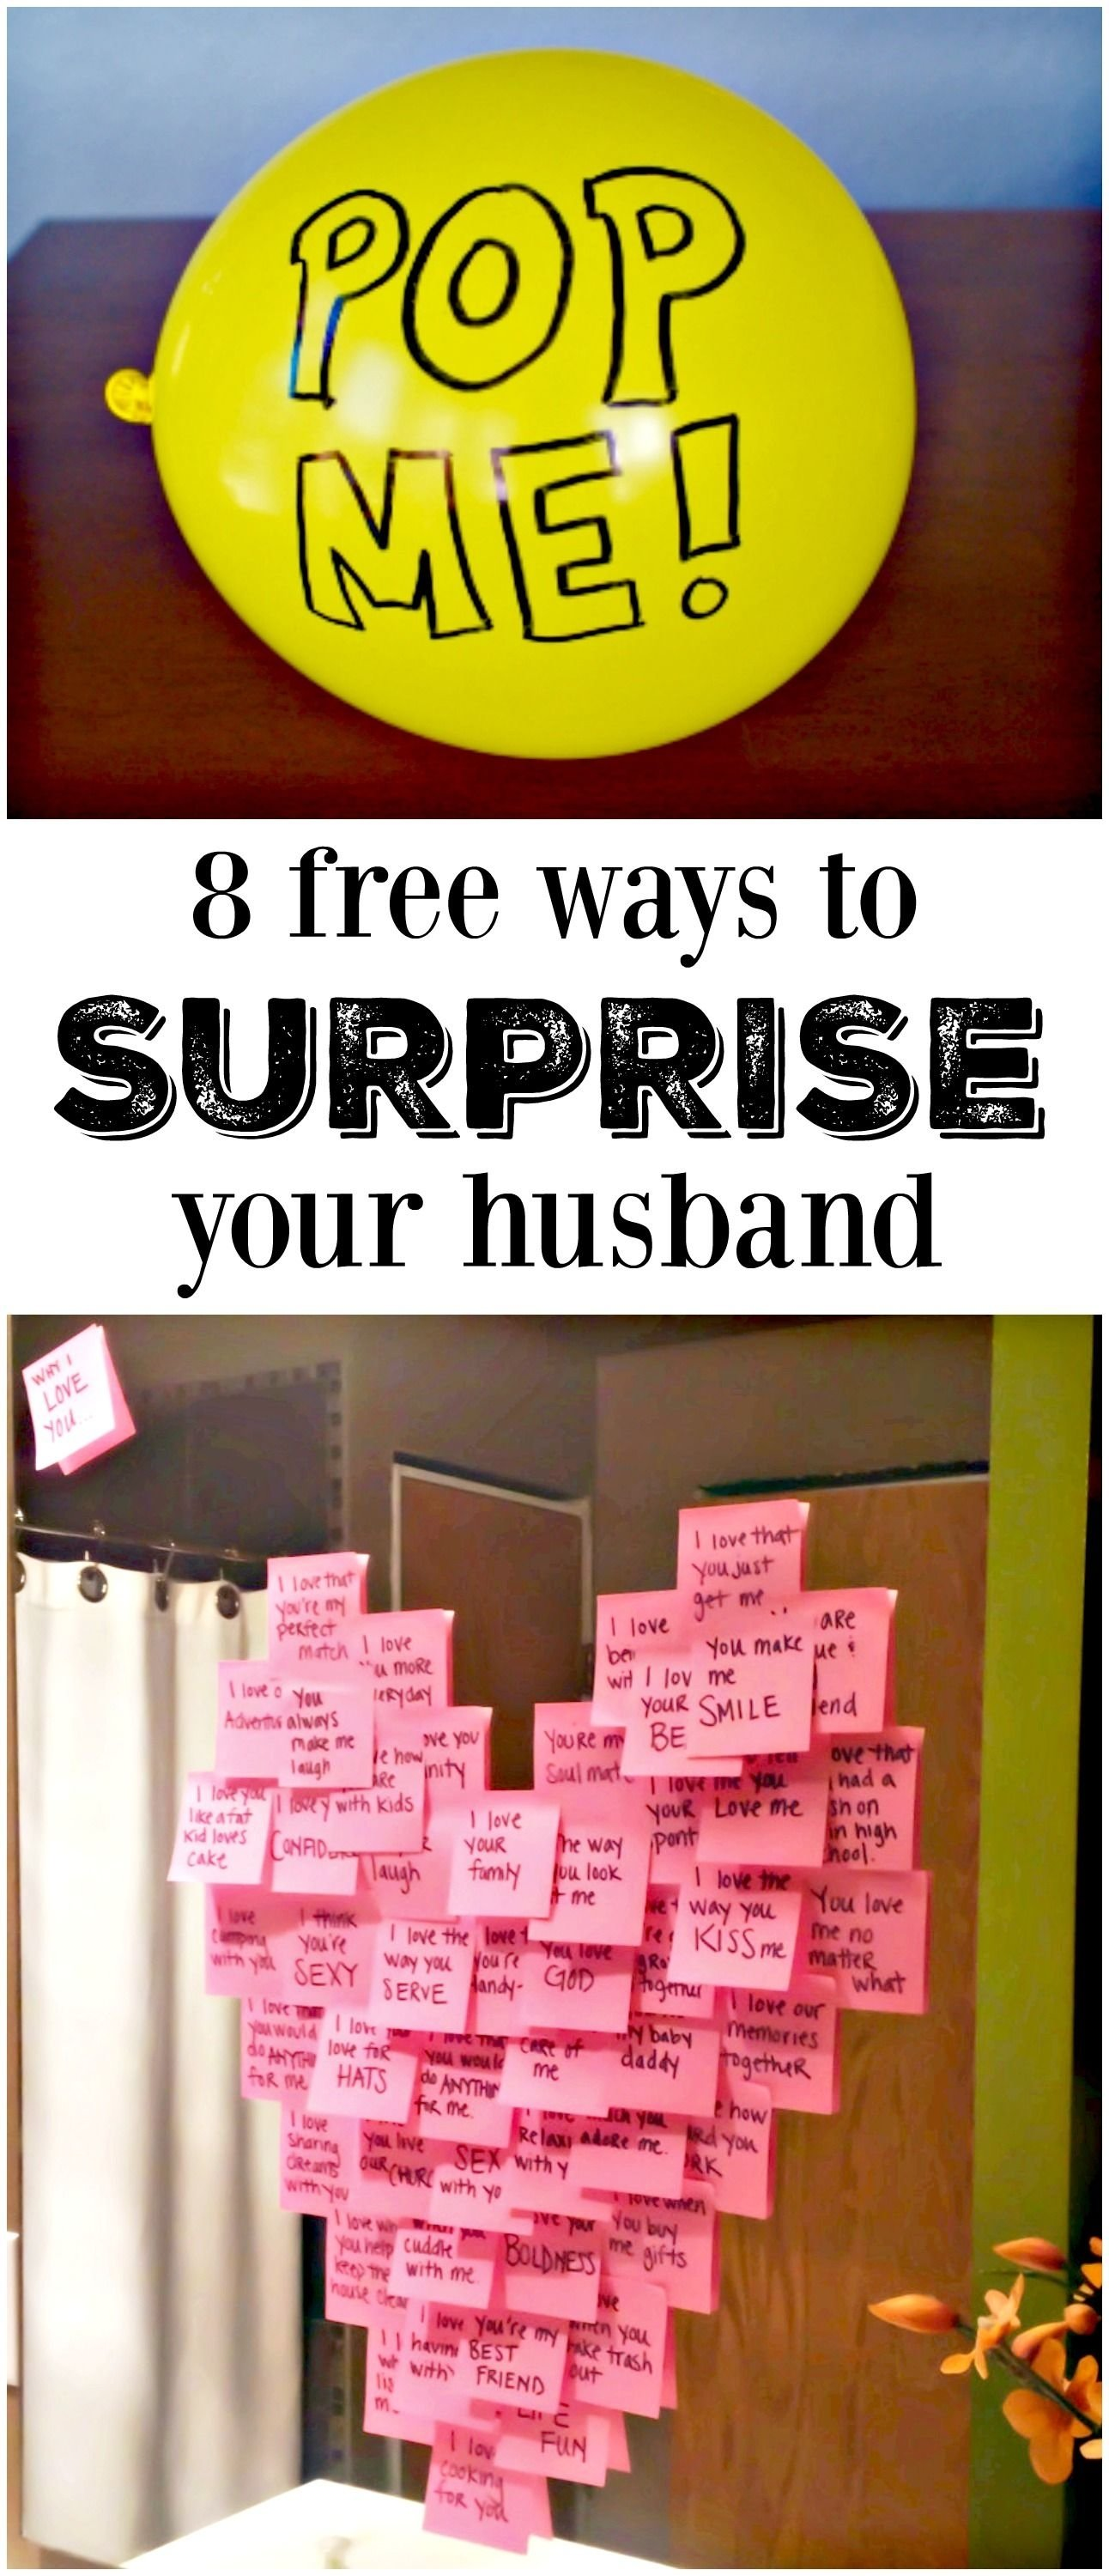 10 Lovely Birthday Ideas For Husband On A Budget 8 meaningful ways to make his day free gift and relationships 3